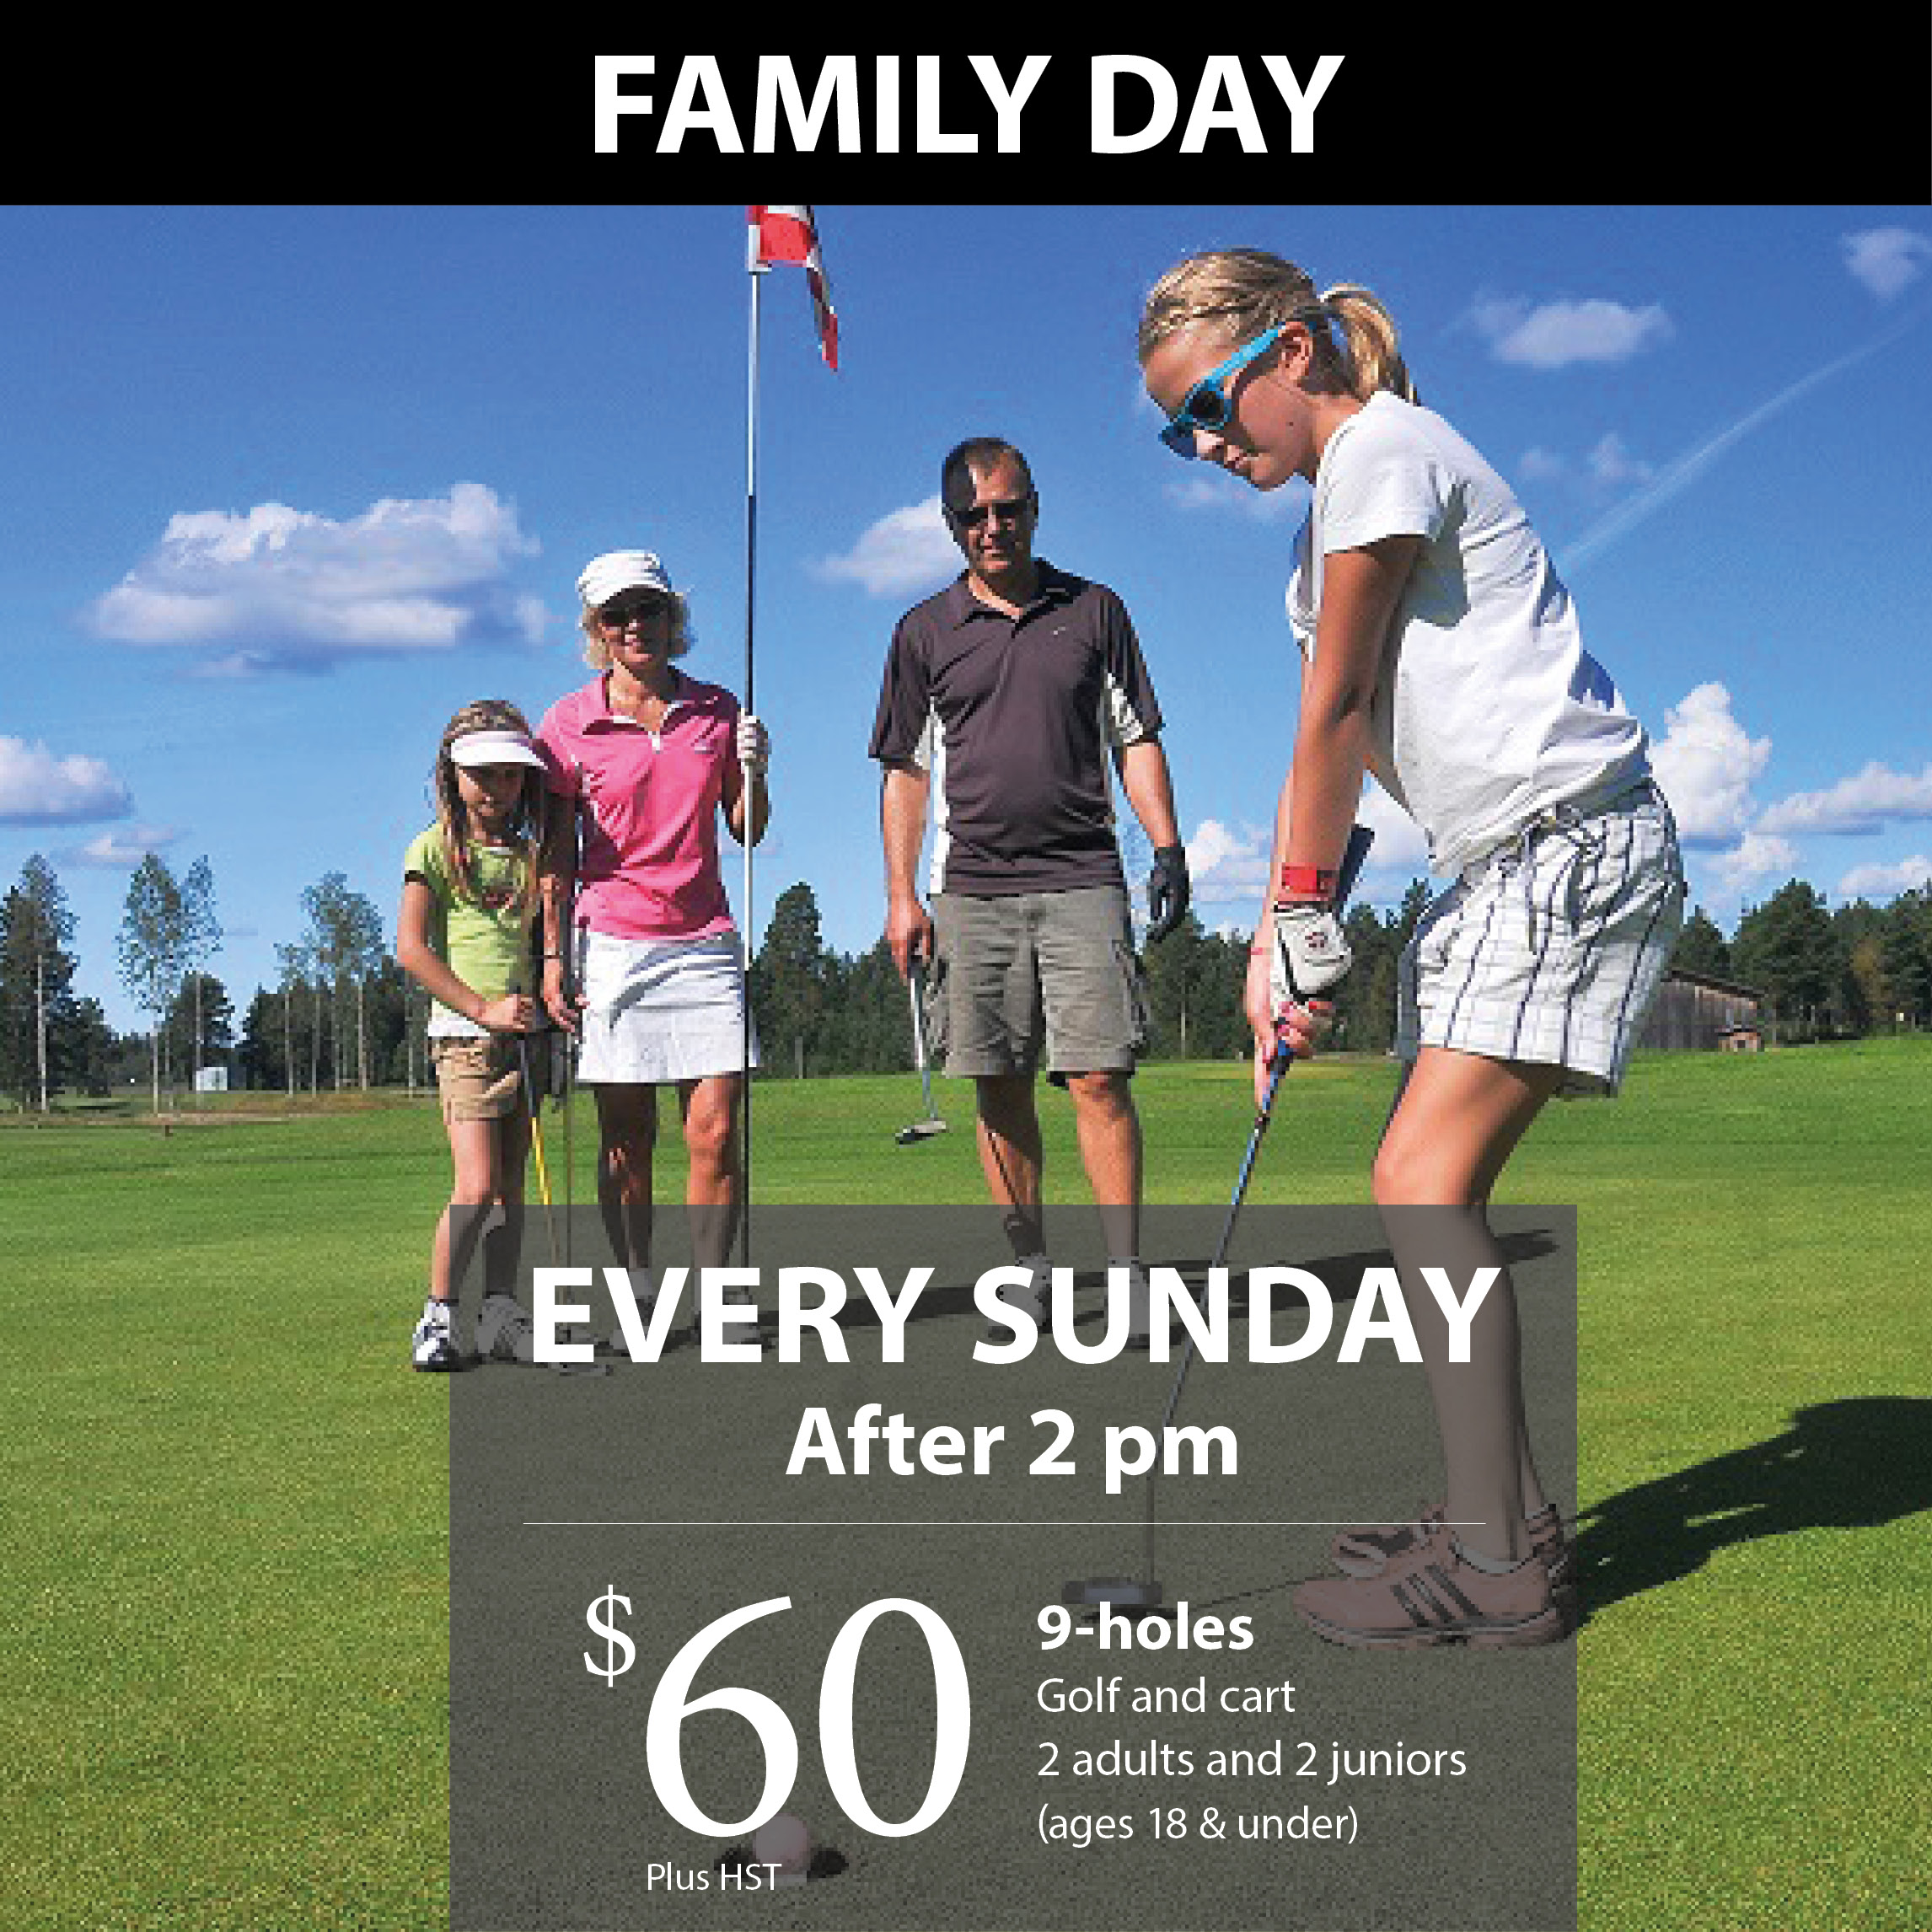 Our Family Golf Package is available every Sunday afternoon!